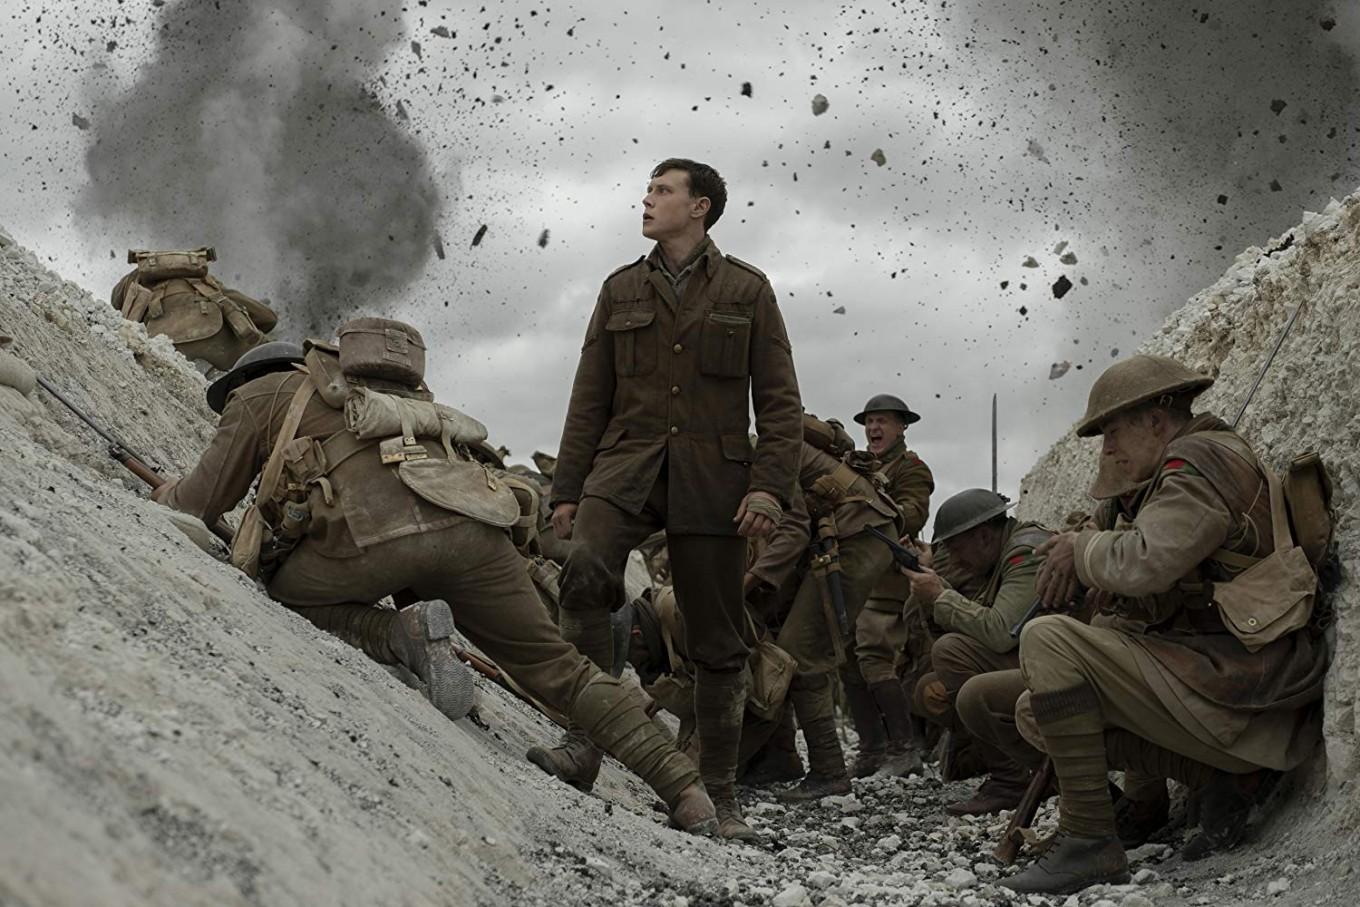 Oscars night is nearly here, and '1917' leads the charge